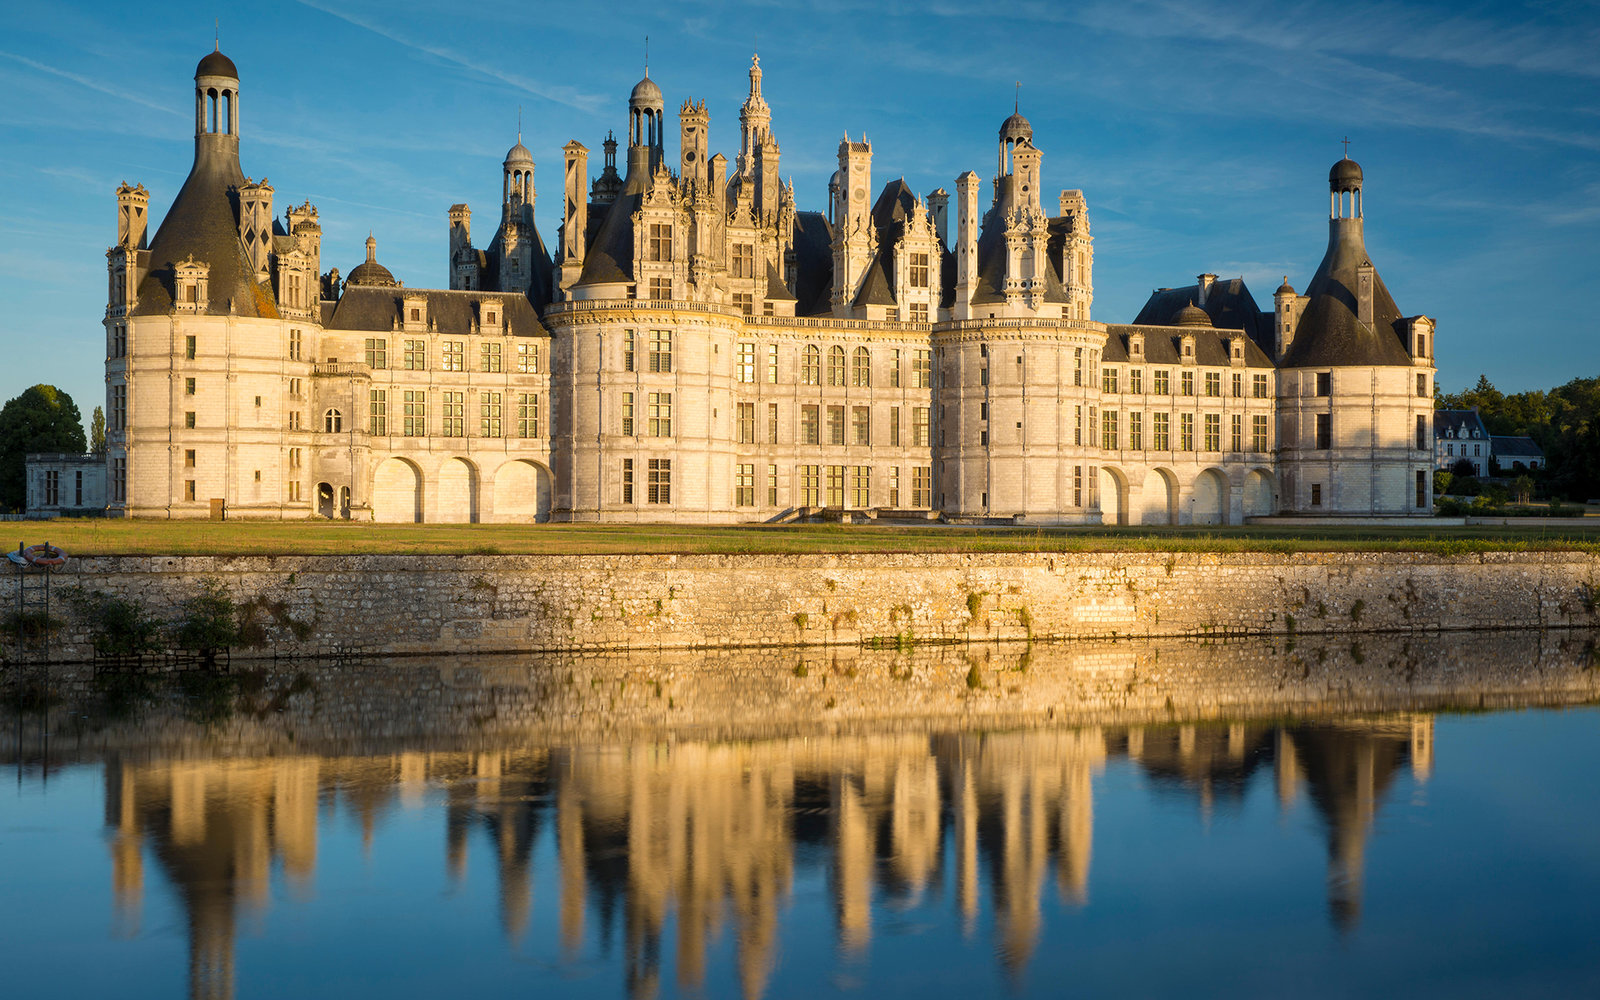 Real-Life Locations That Inspired Disney Movies | Travel + Leisure